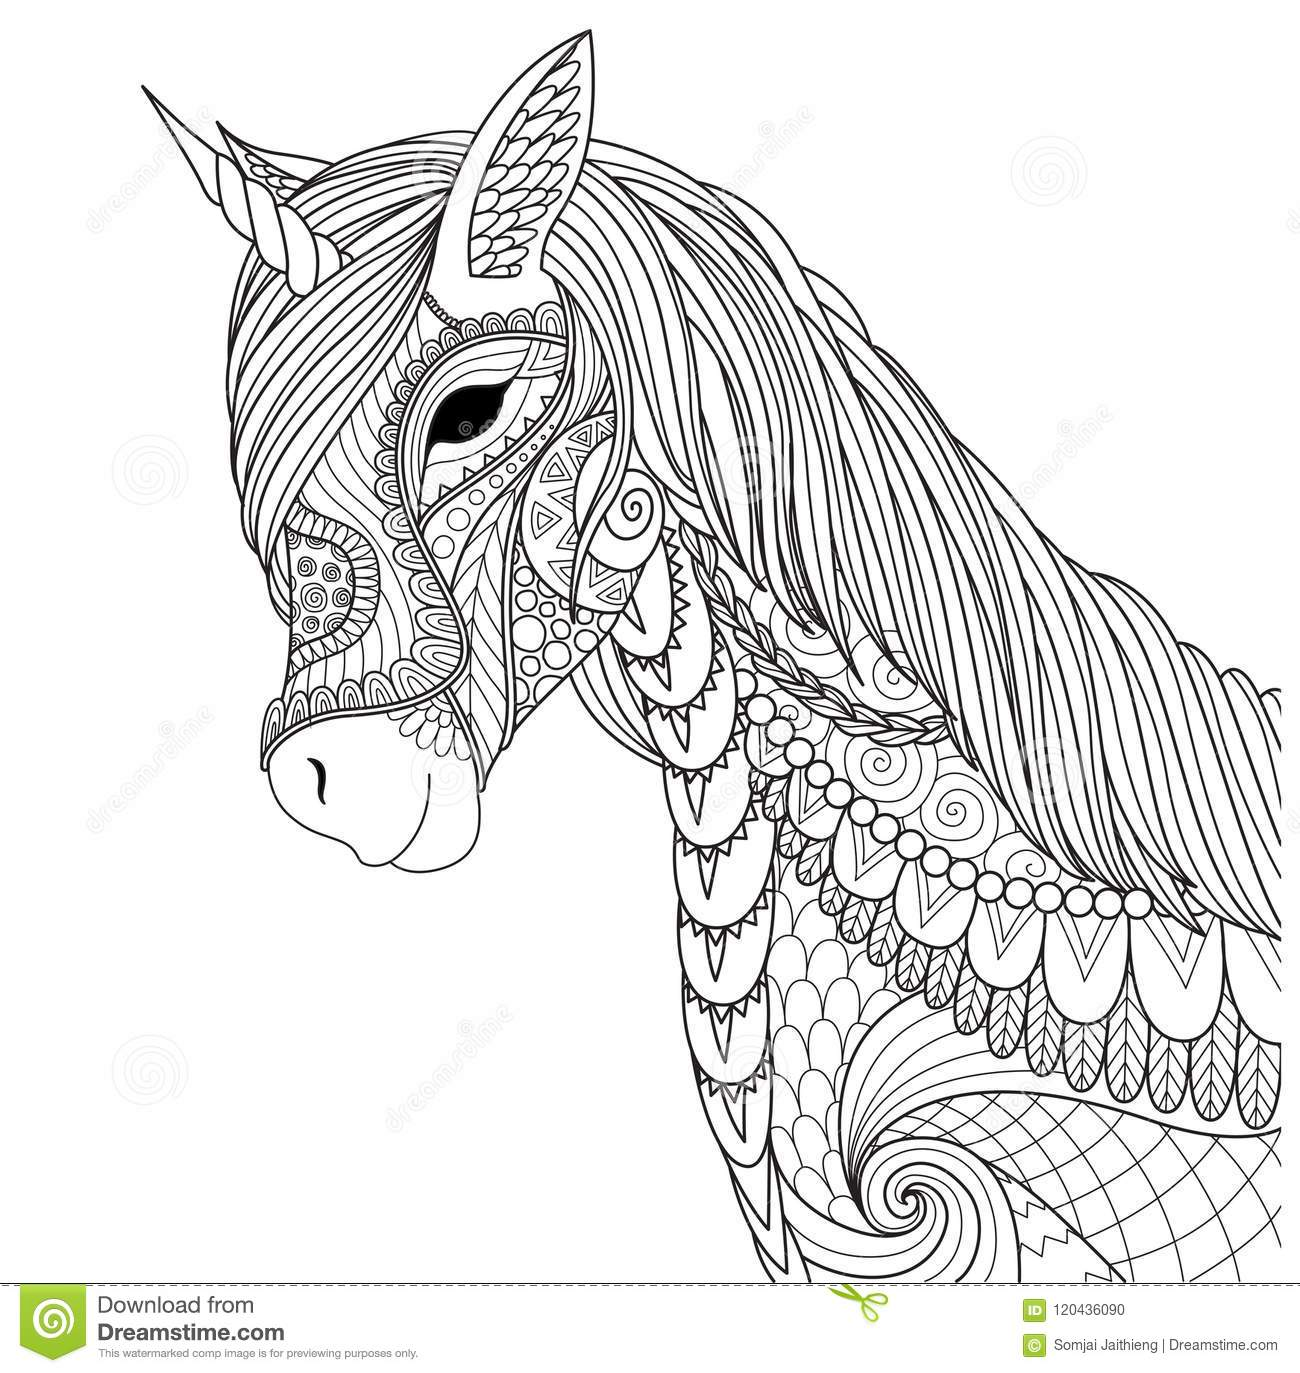 Unicorn for coloring book page and other design element vector illustration